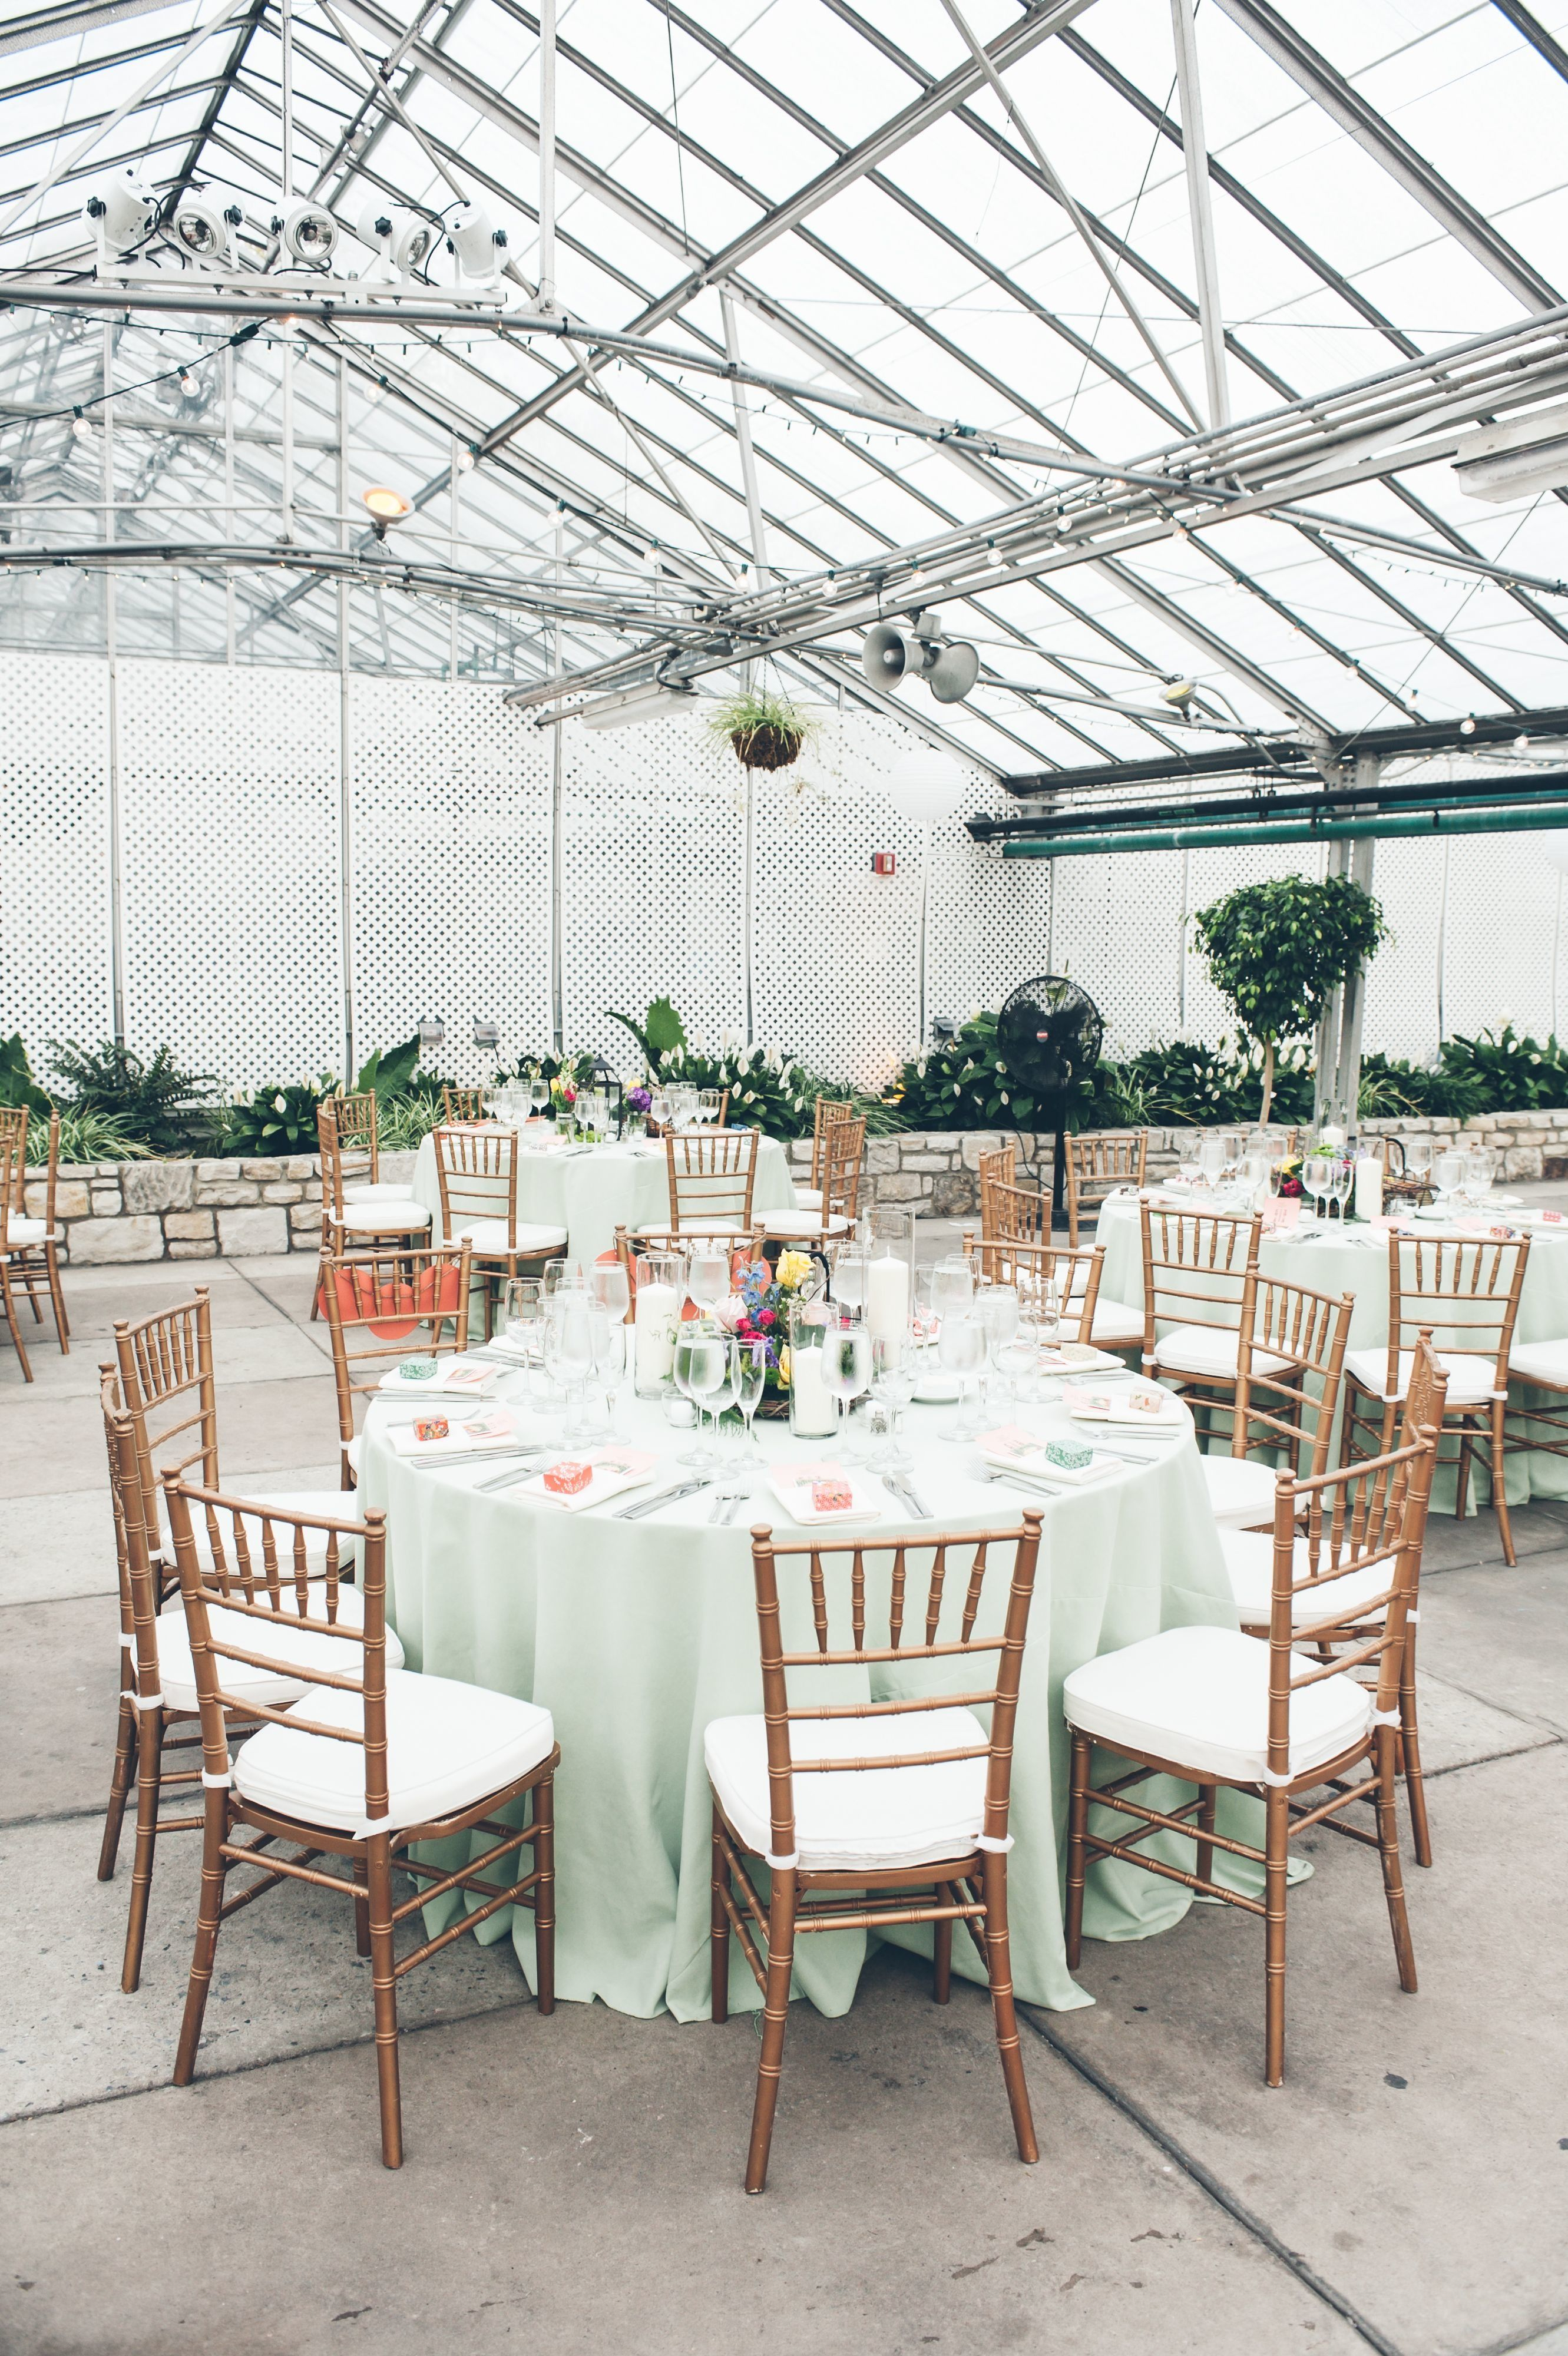 Whimsical Greenhouse Wedding | Greenhouse wedding, Videography and ...